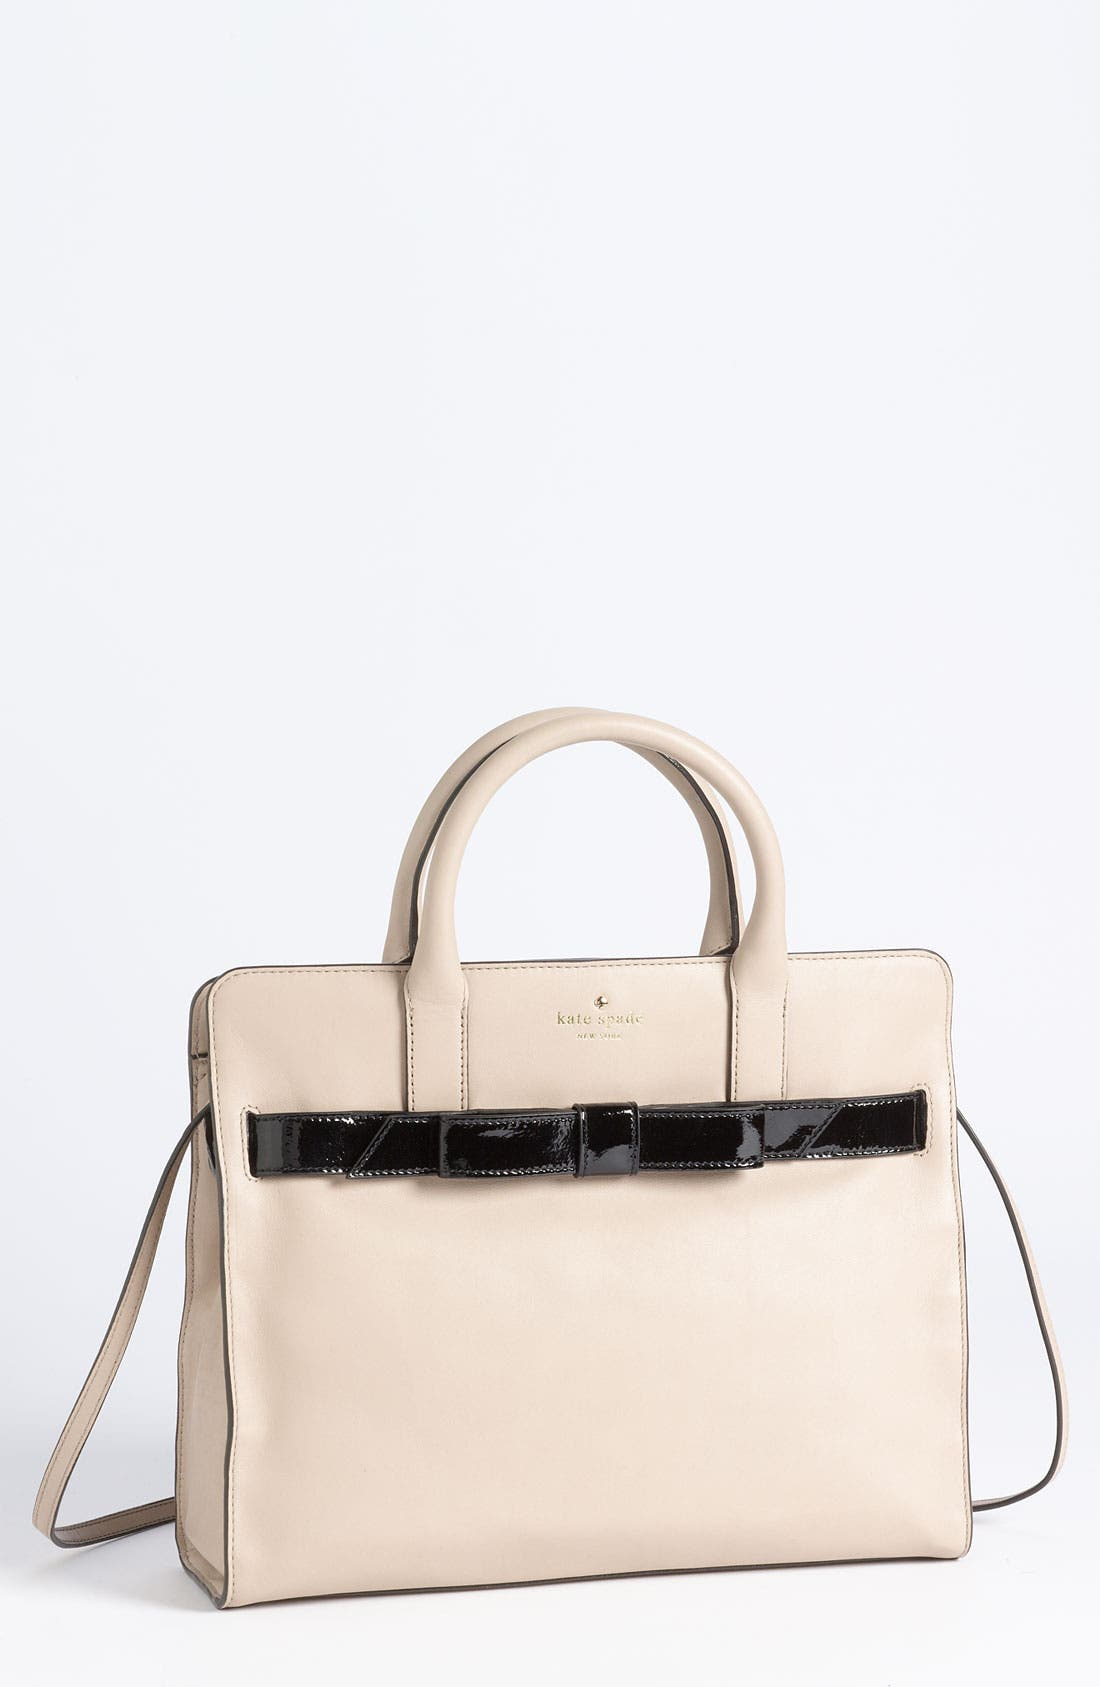 Main Image - kate spade new york 'rosa' satchel